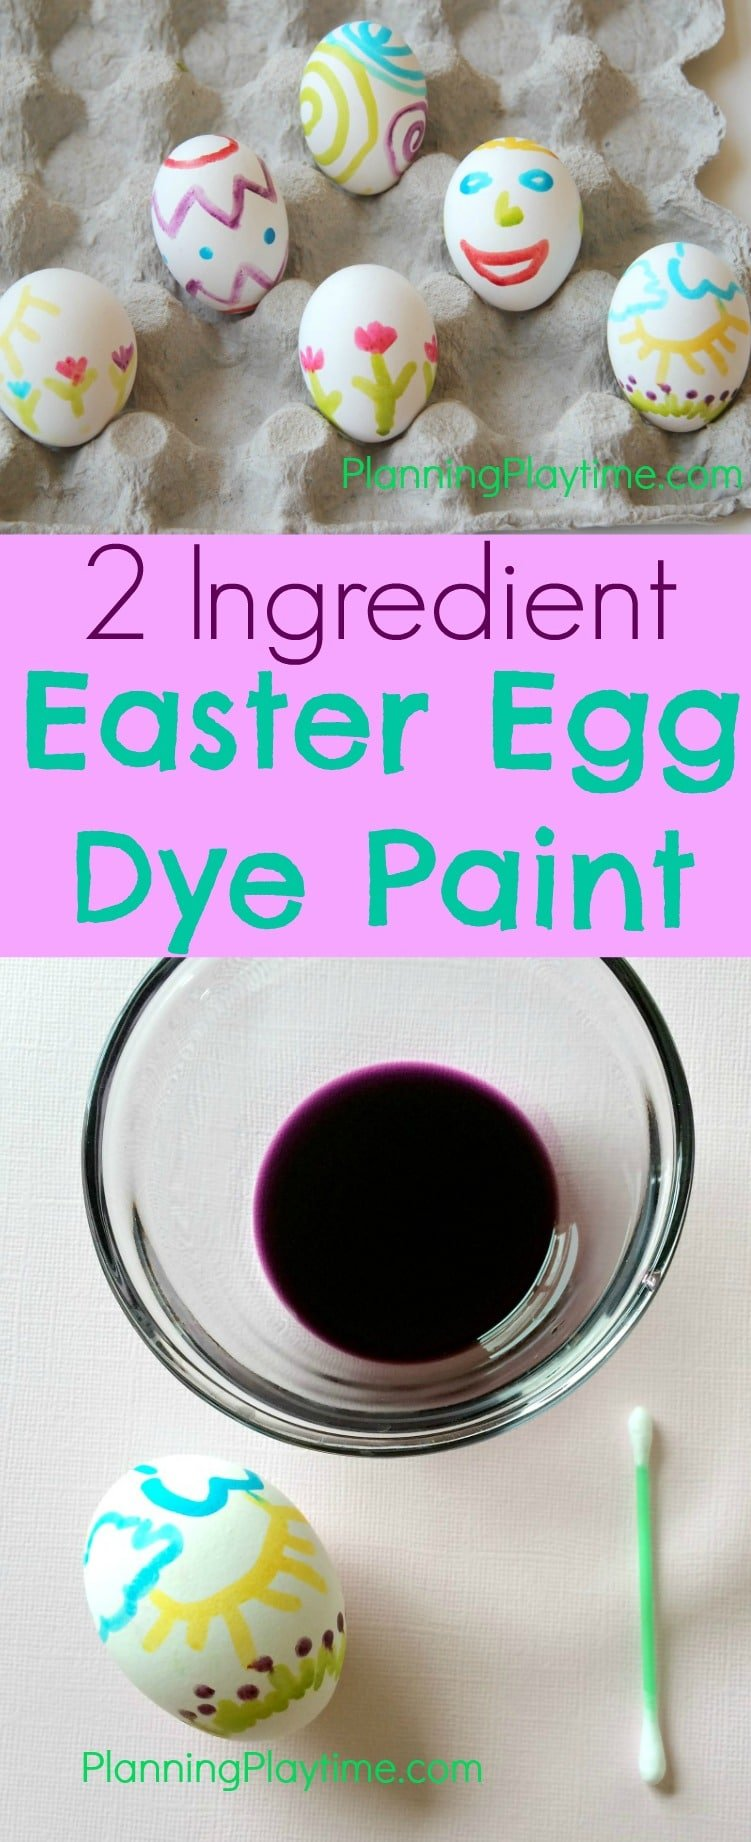 2 Ingredient Easter Egg Dye Paint